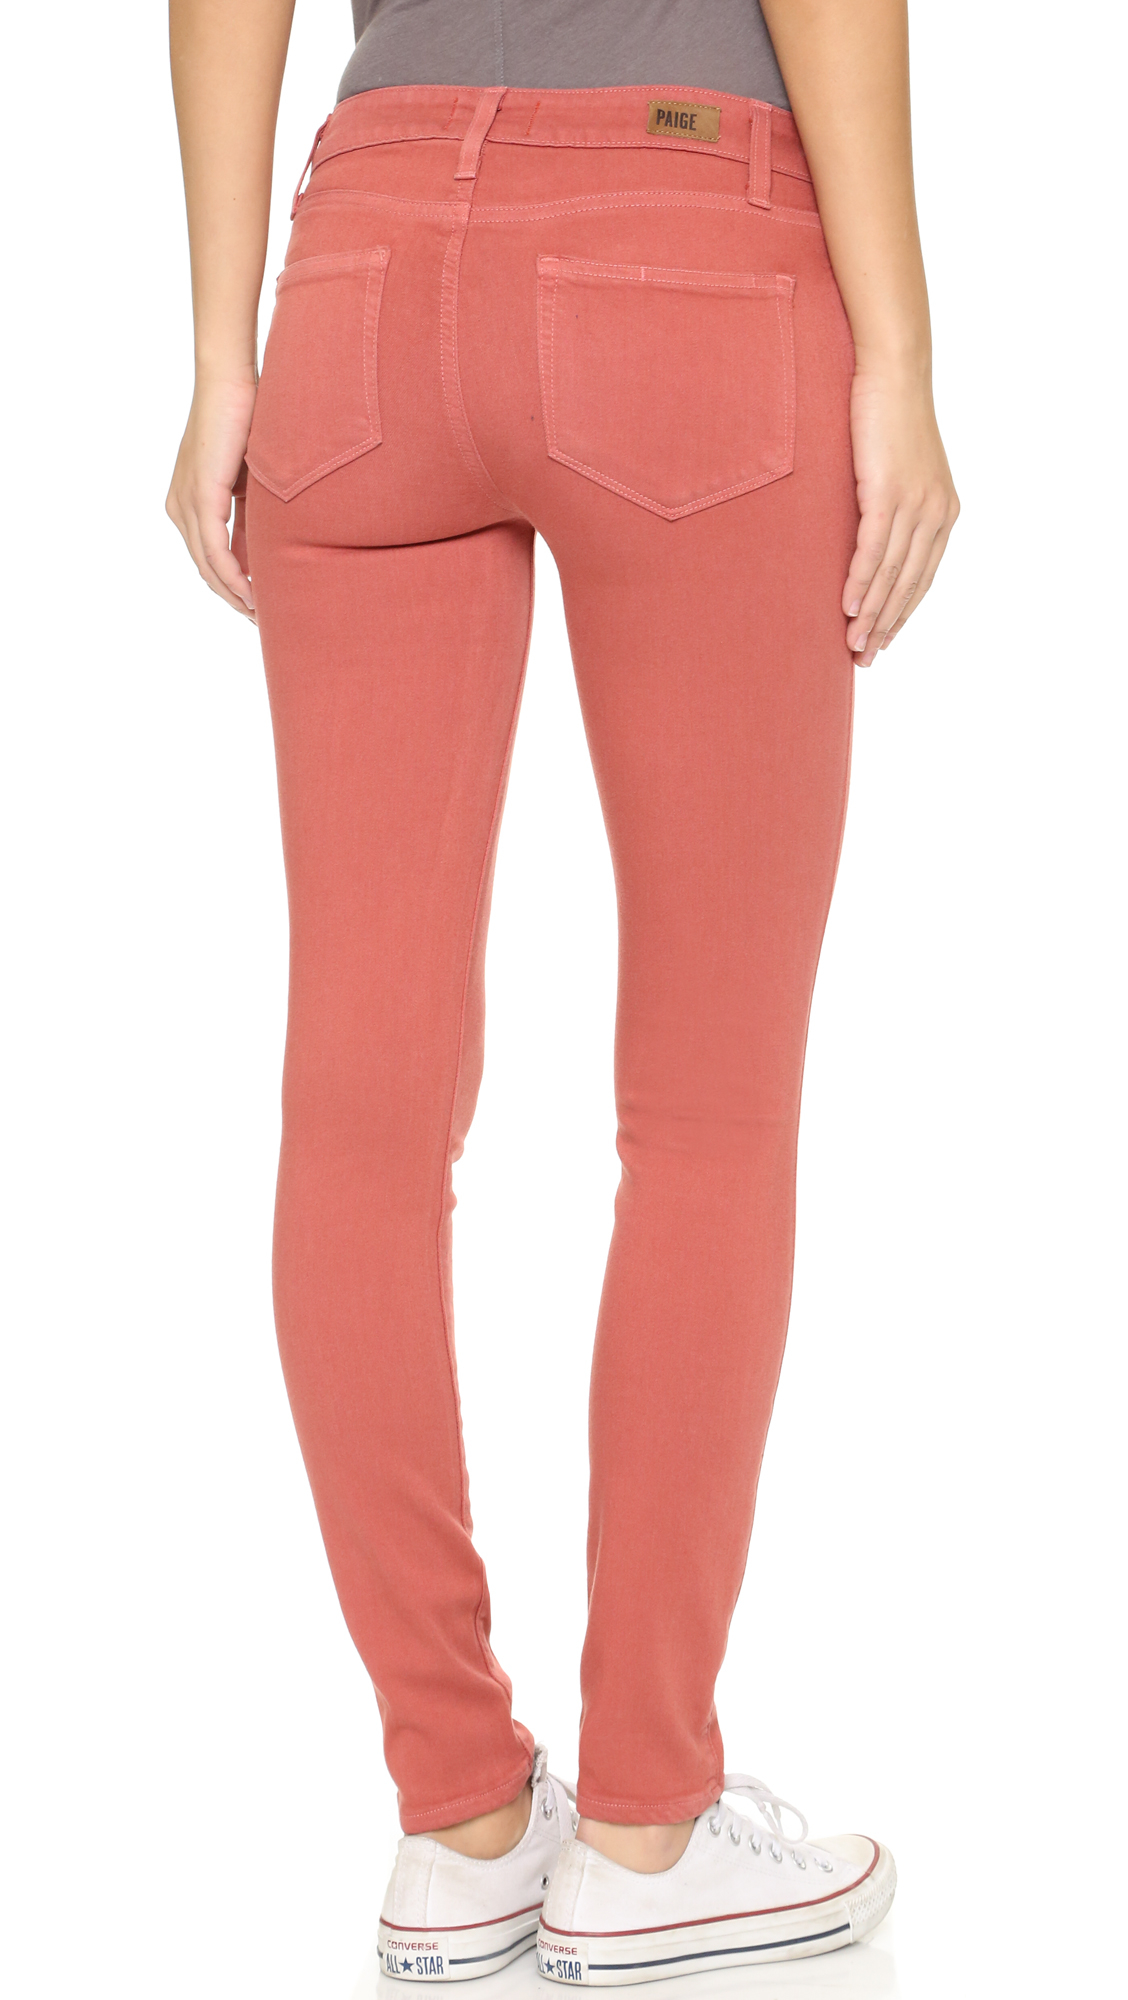 Paige edgemont ultra skinny jeans in red lyst for The edgemont